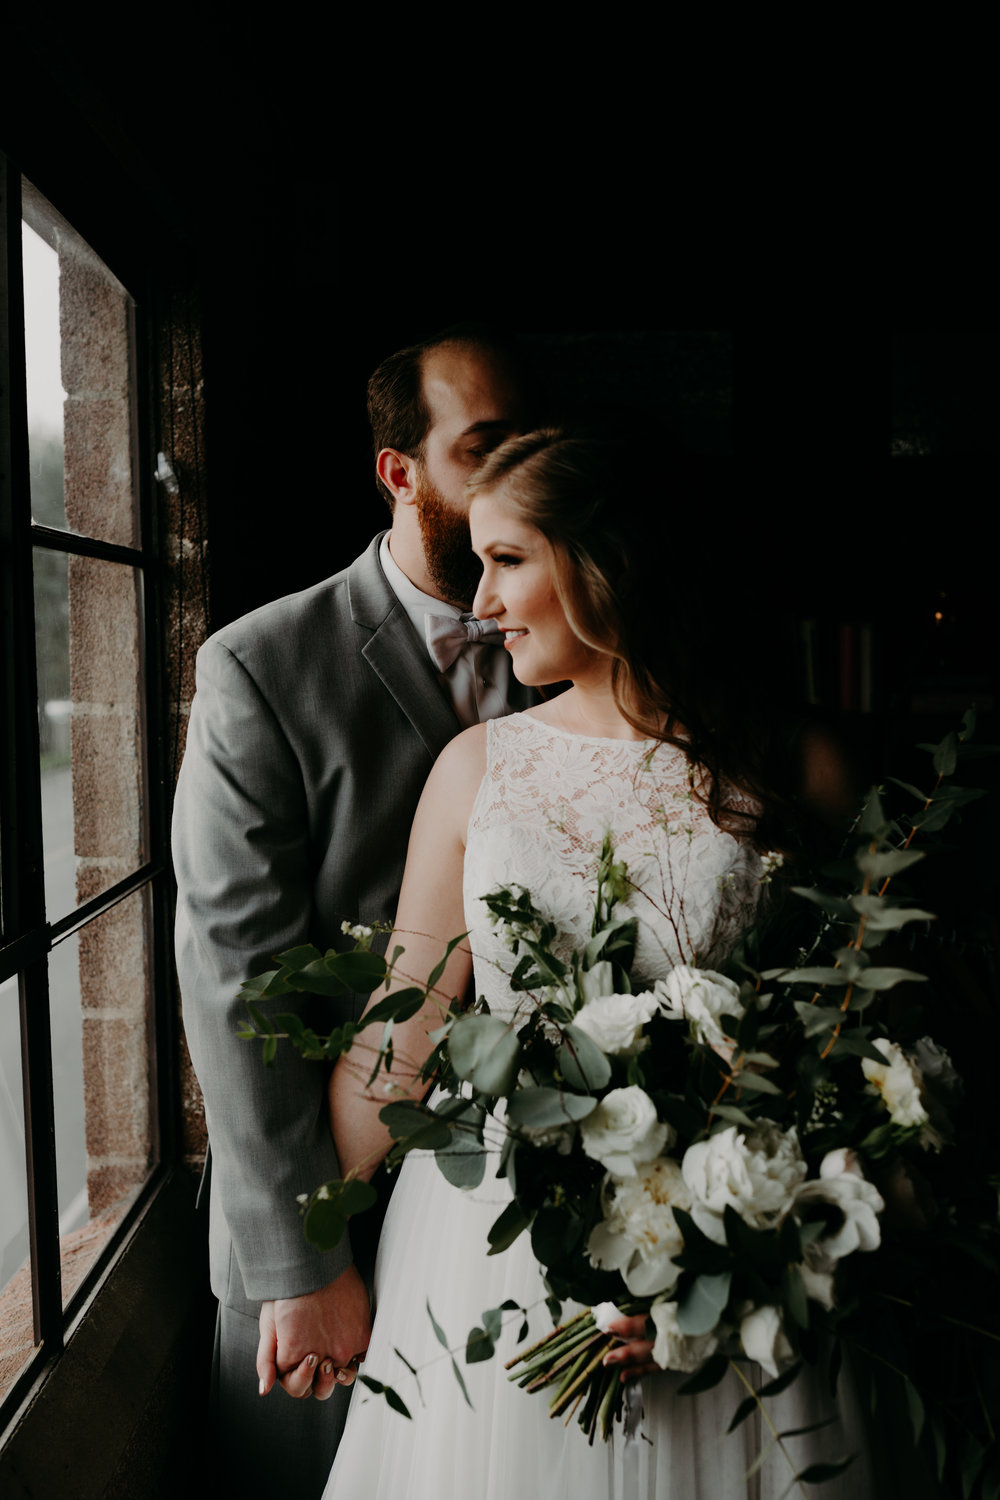 Smoky Hollow Studios Wedding Anne & Lewis Emily Magers Photography-380.jpg